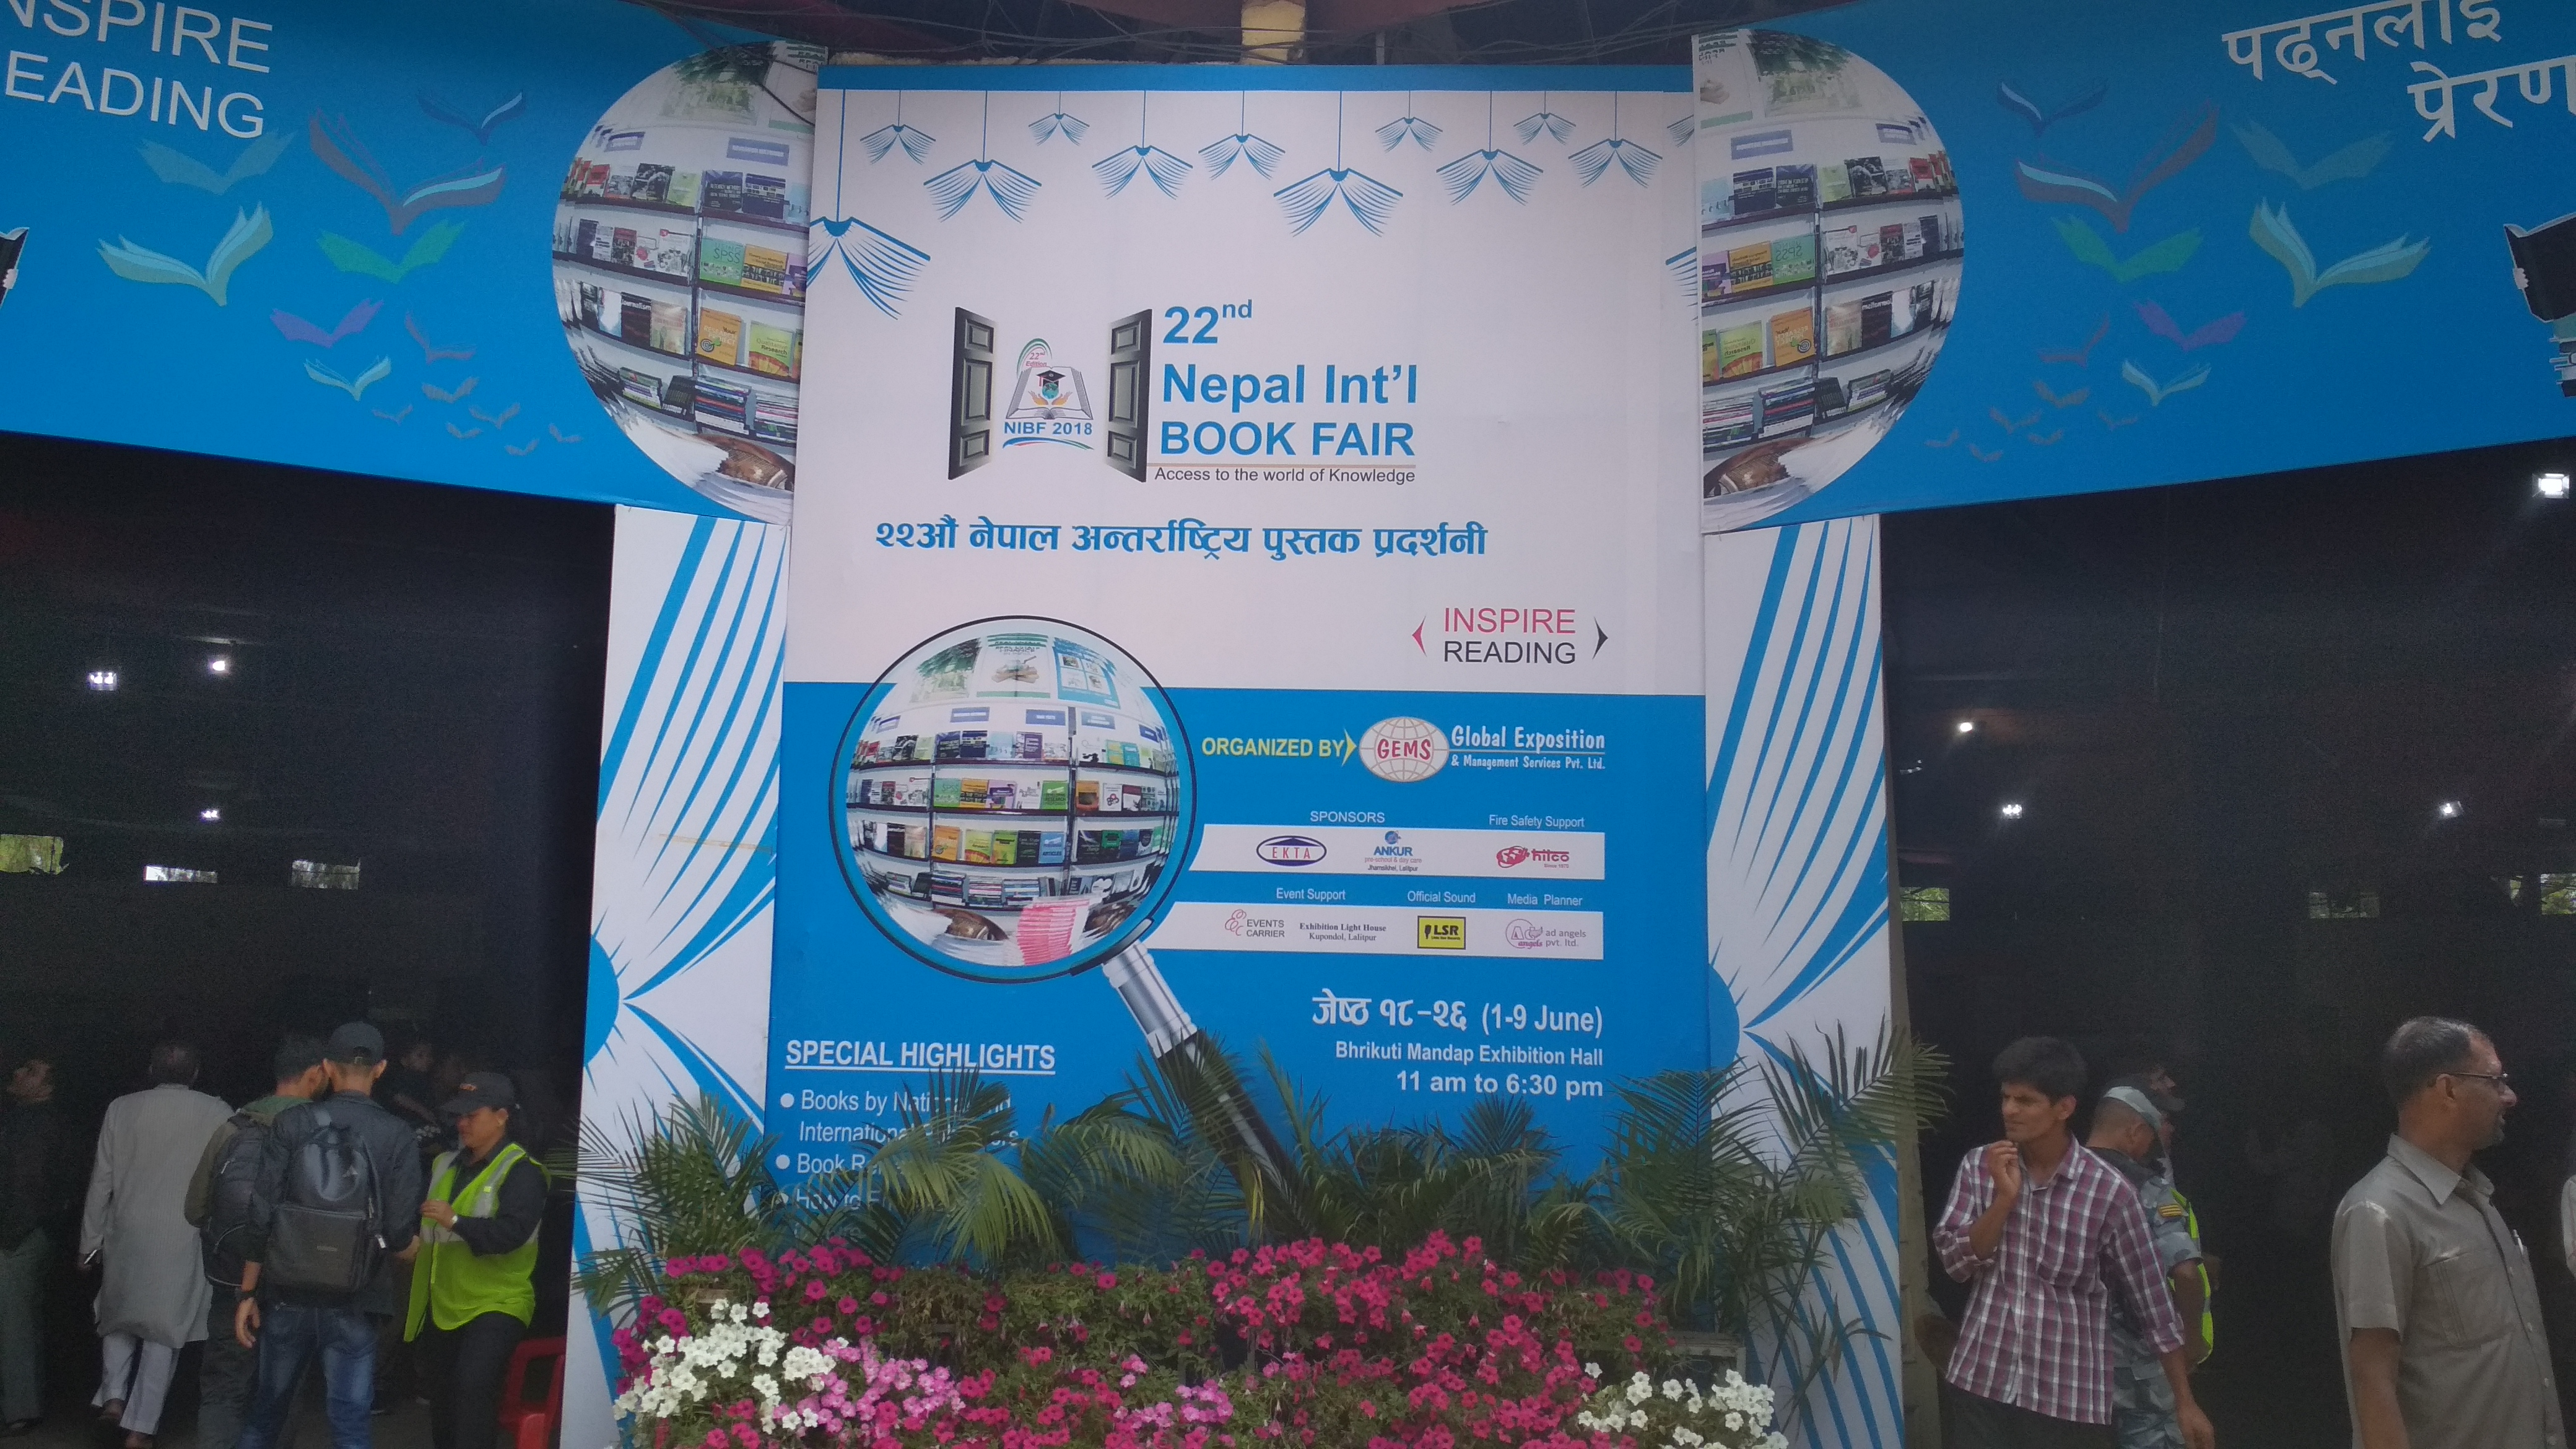 Visitors explore the stalls showcasing books and education materials in 22nd Nepal International  Book Fair organised by Global Exposition and Management Services Pvt Ltd, at Bhrikuti Mandap Exhibition Hall in Kathmandu, from June 1 to 9, on Saturday, June 9, 2018. Photo: Sureis/THT Online